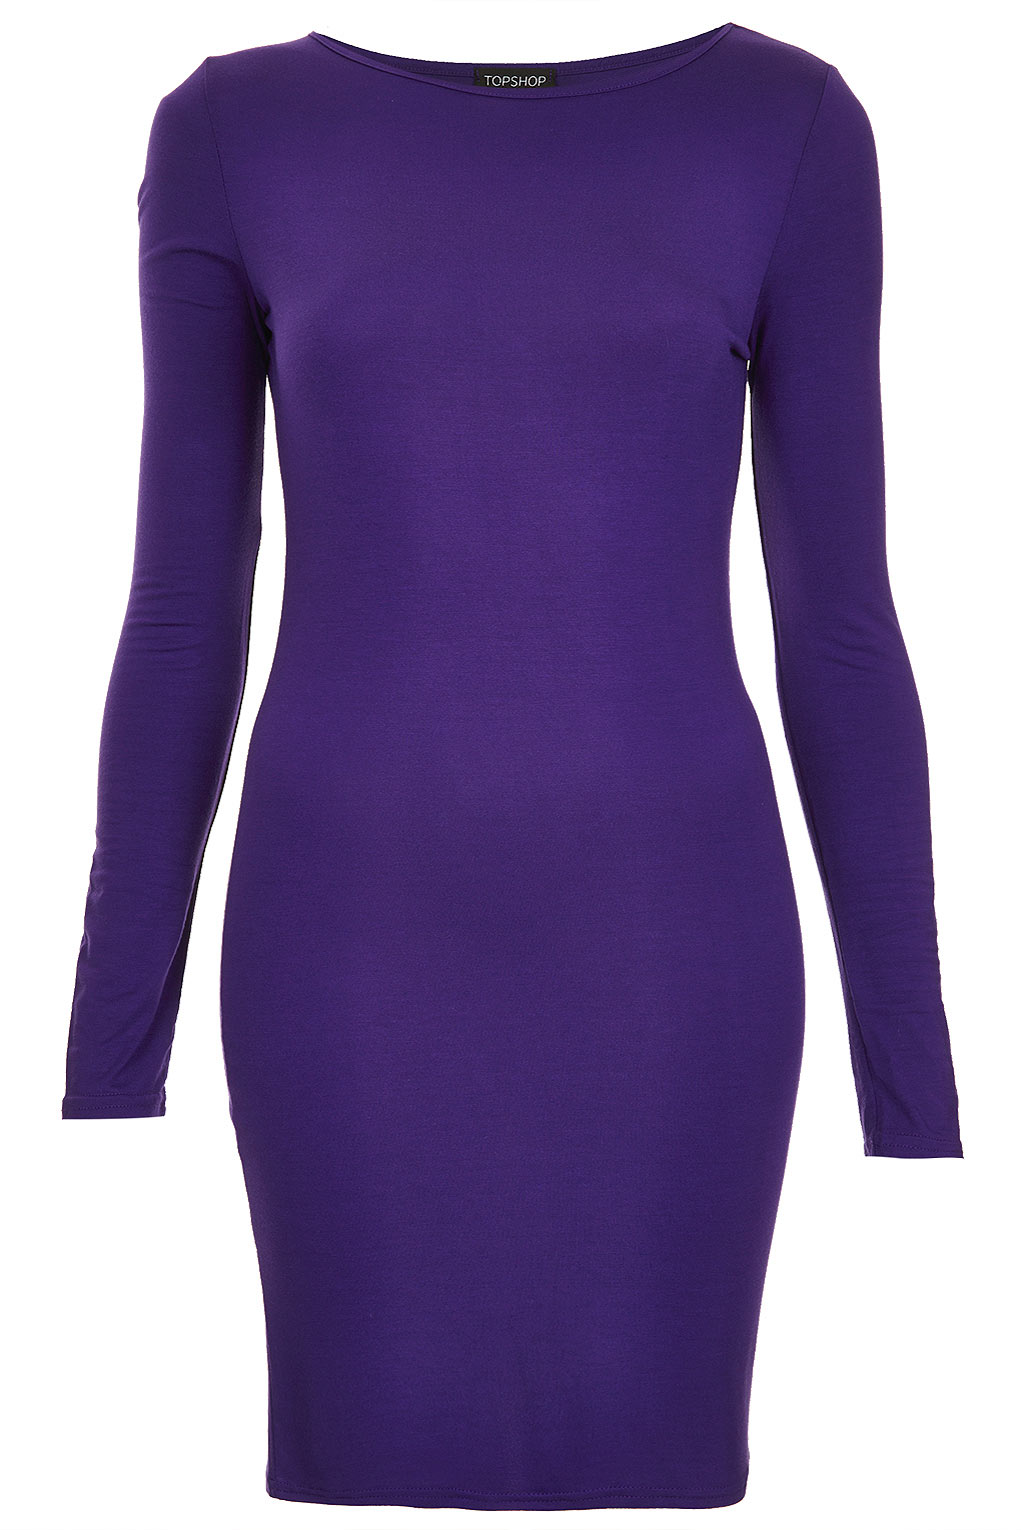 Lyst Topshop Plain Jersey Bodycon Dress In Purple